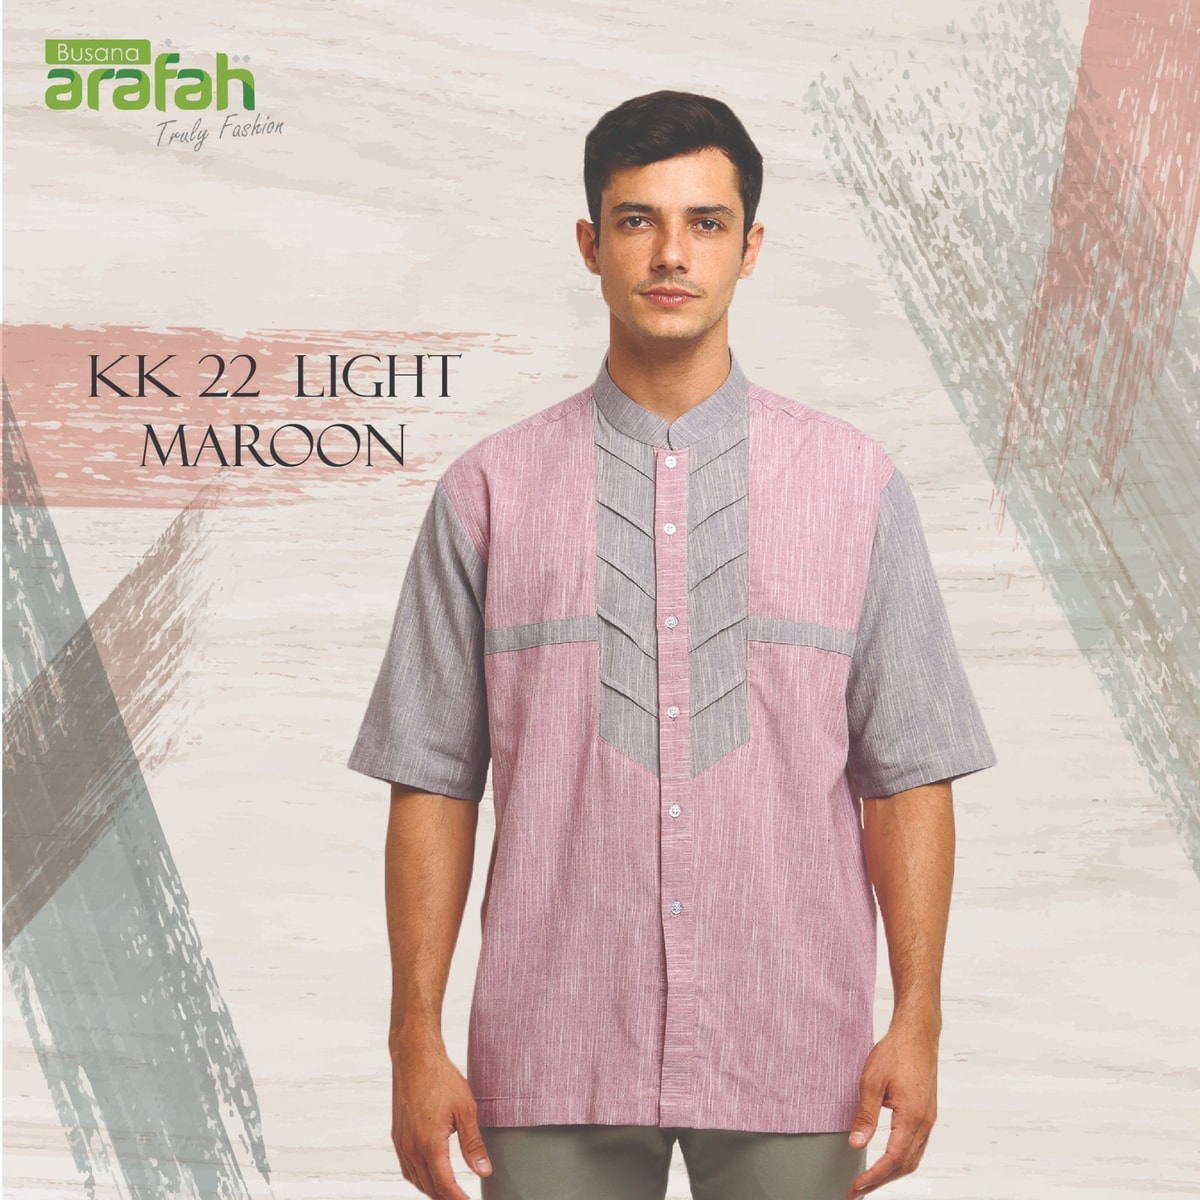 koko couple arafah 22 light maroon